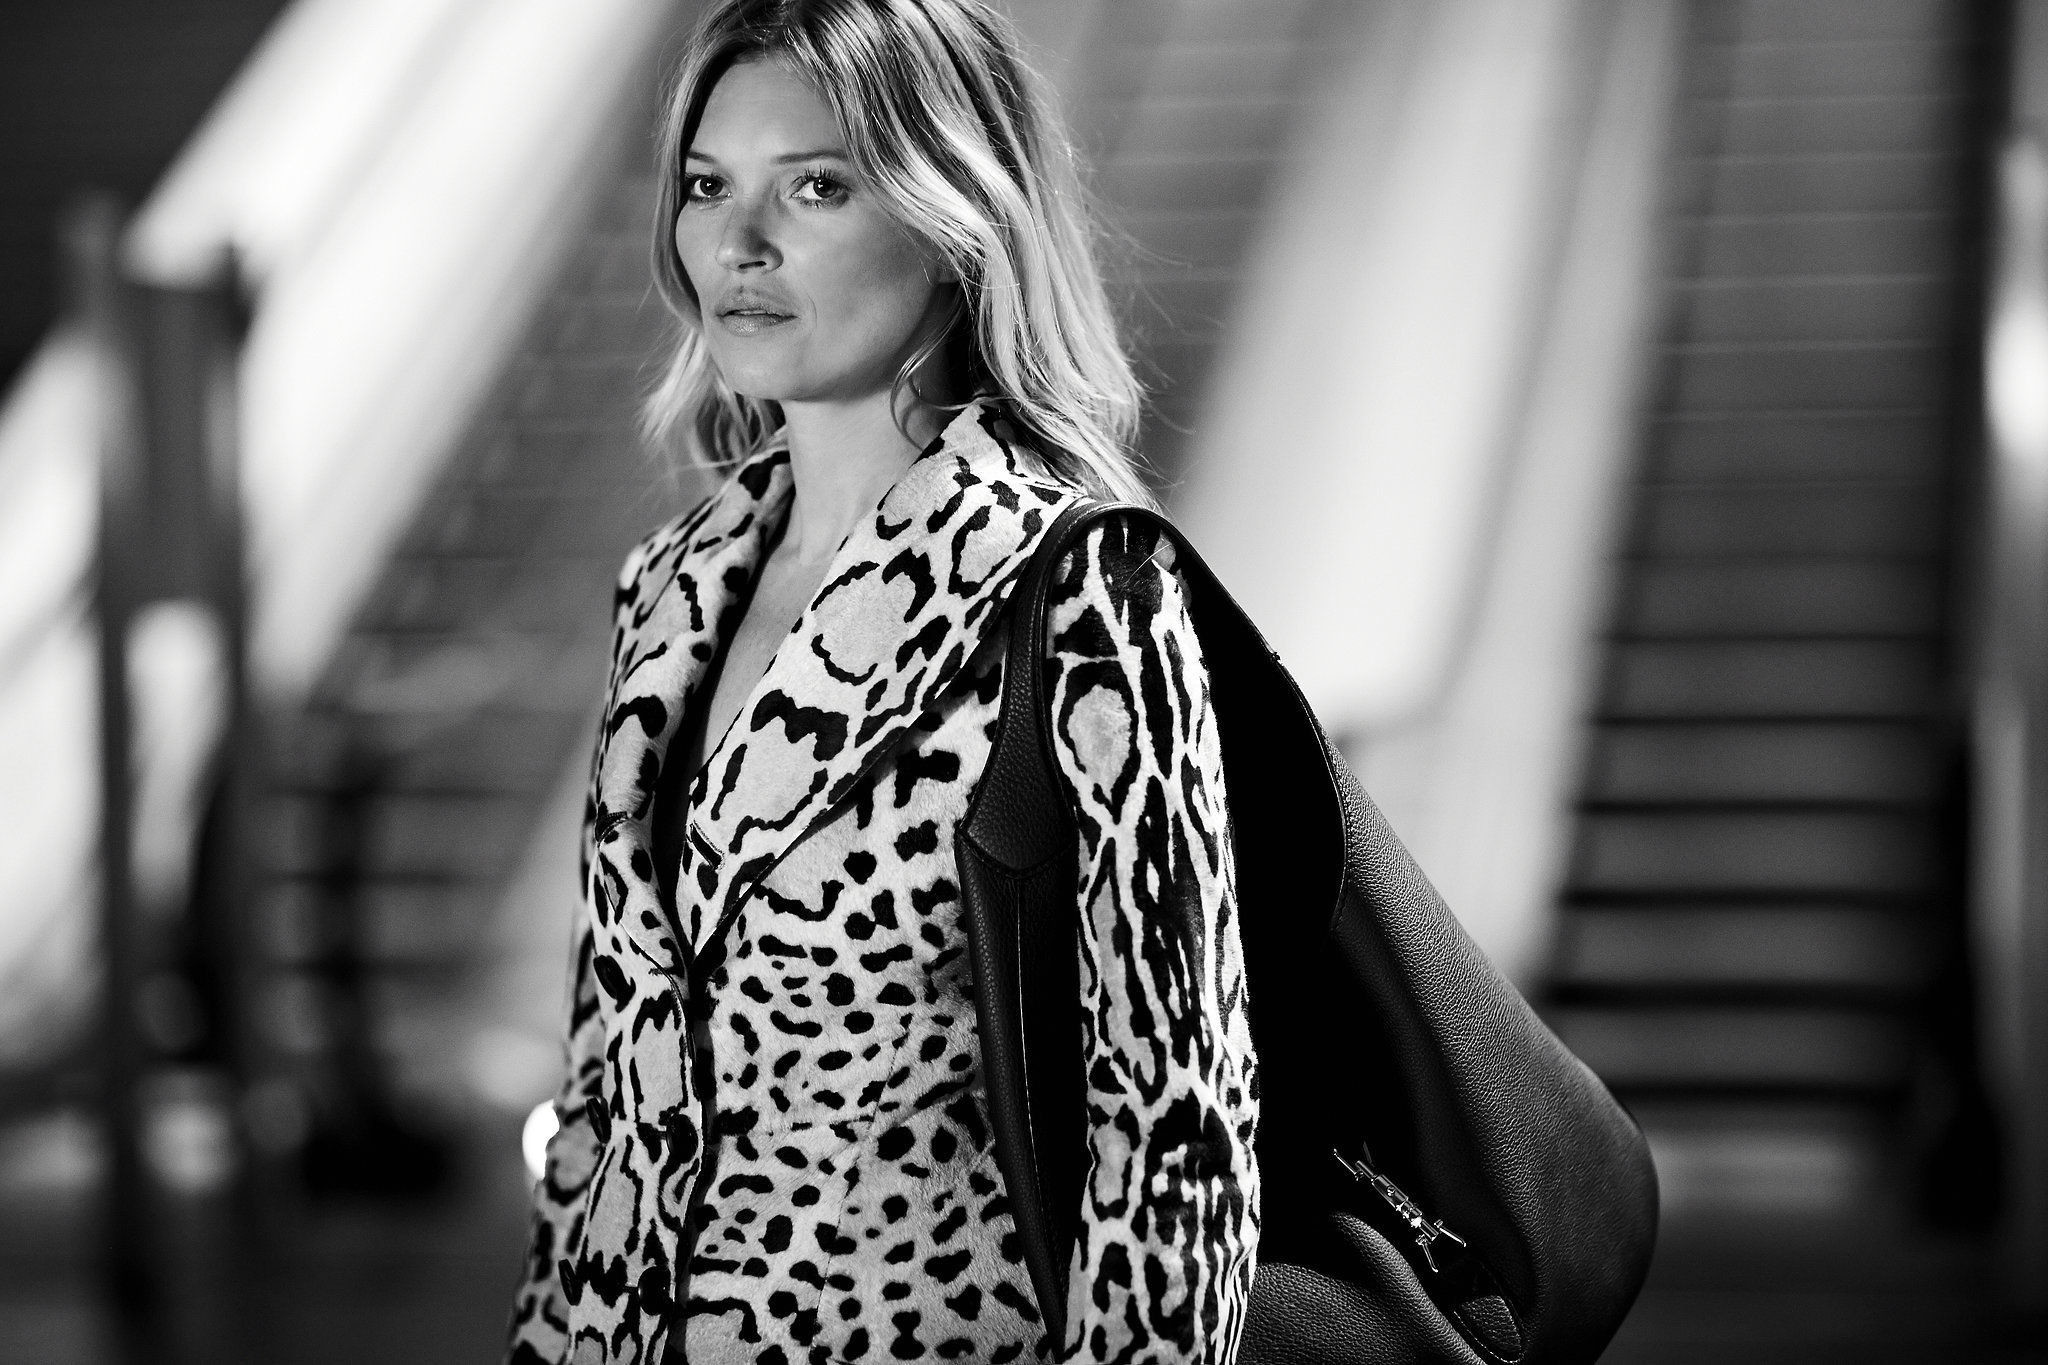 Kate Moss in Black & White